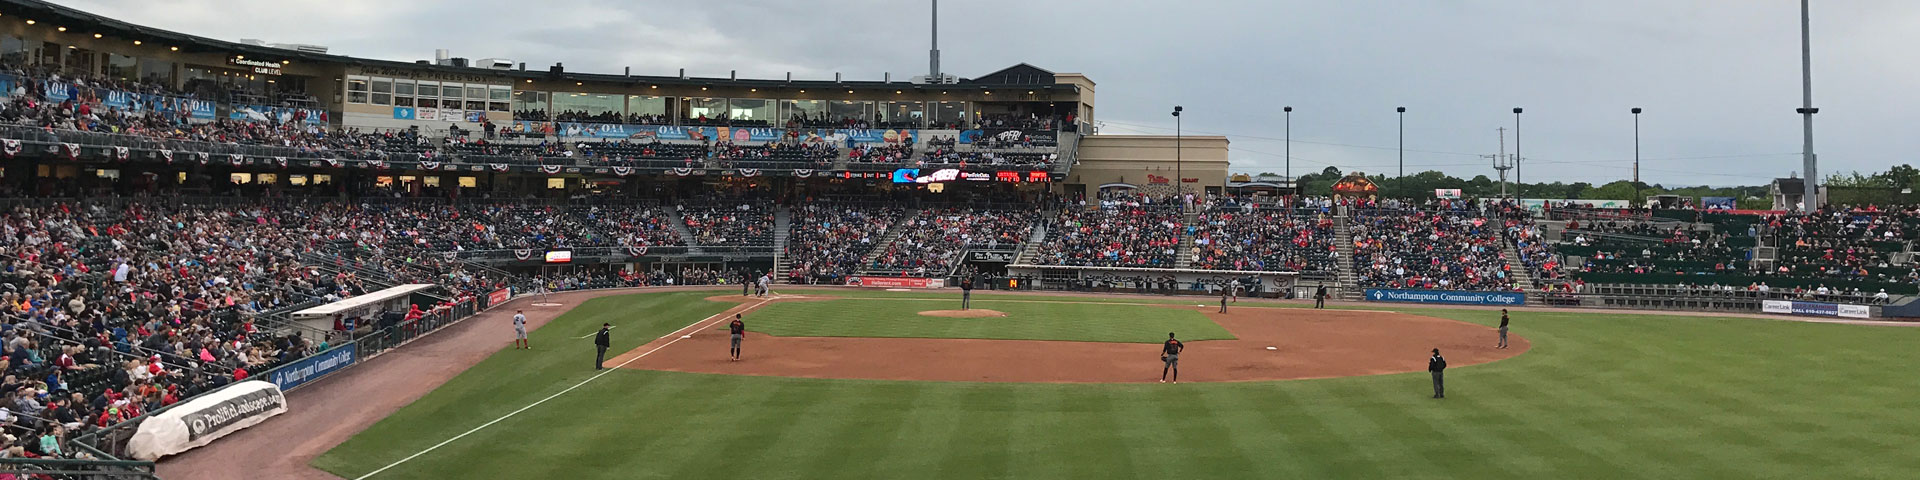 A view of a baseball game from right field.